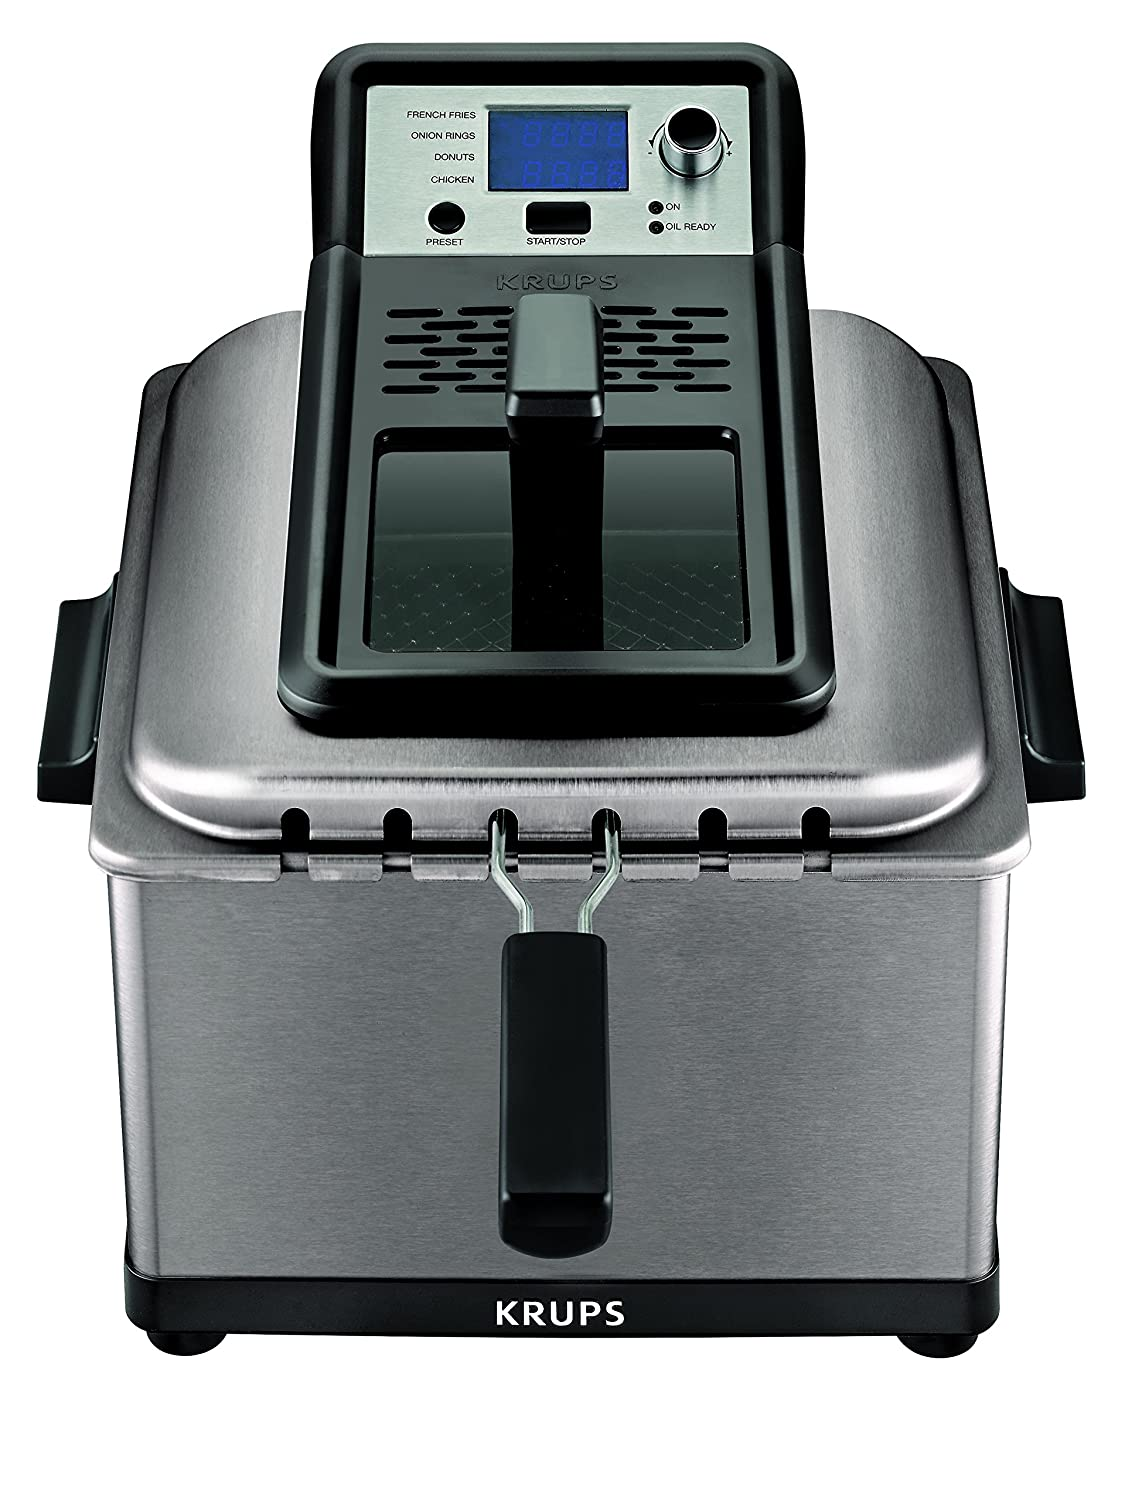 KRUPS KJ502D51Deep Fryer, Electric Deep Fryer, Stainless Steel Triple Basket Fryer, 4.5 Liter, Silver